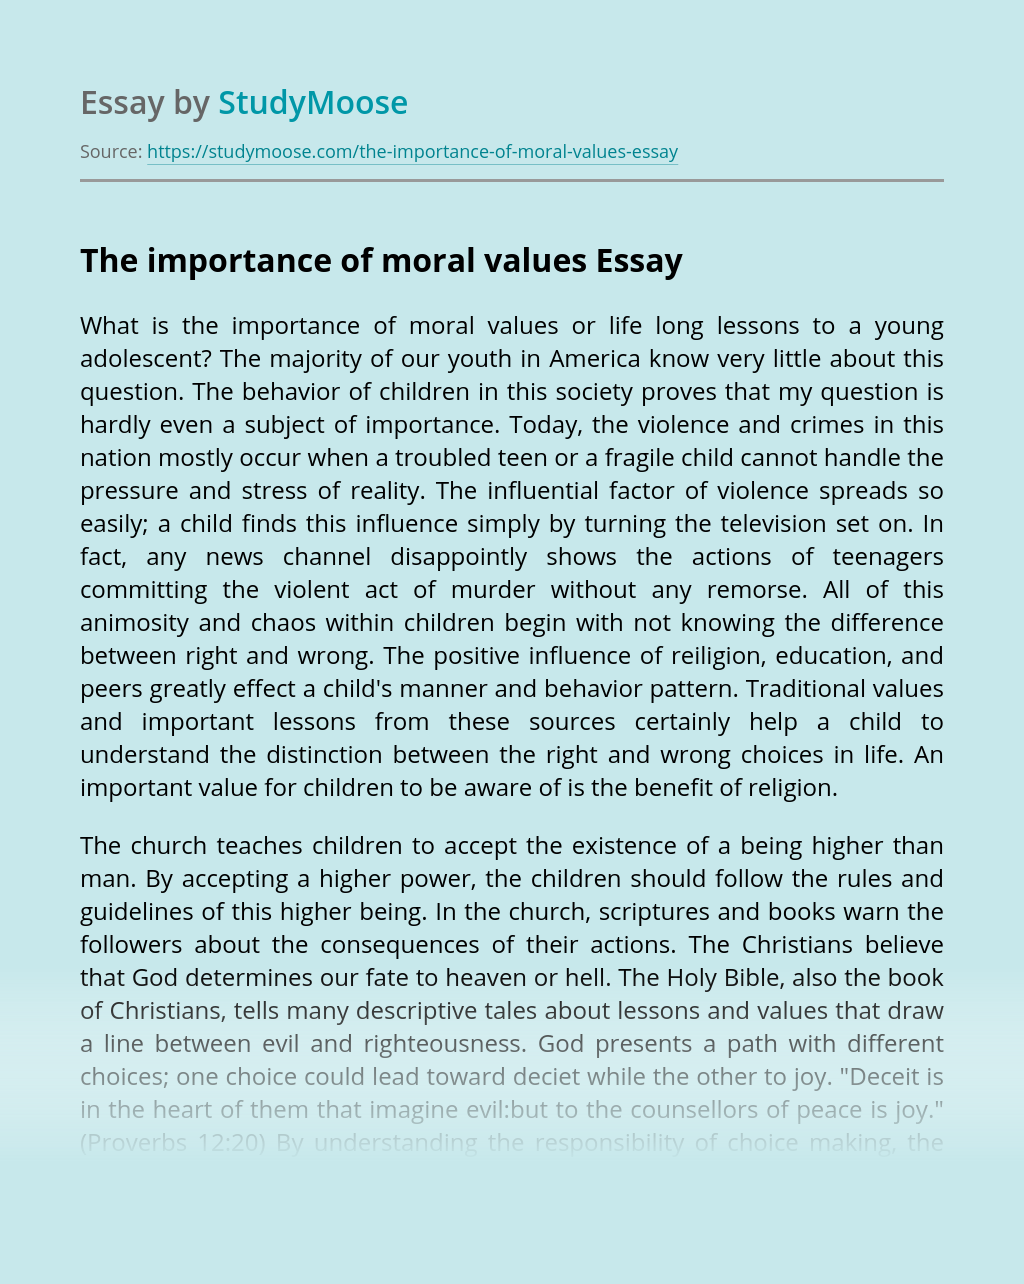 The importance of moral values